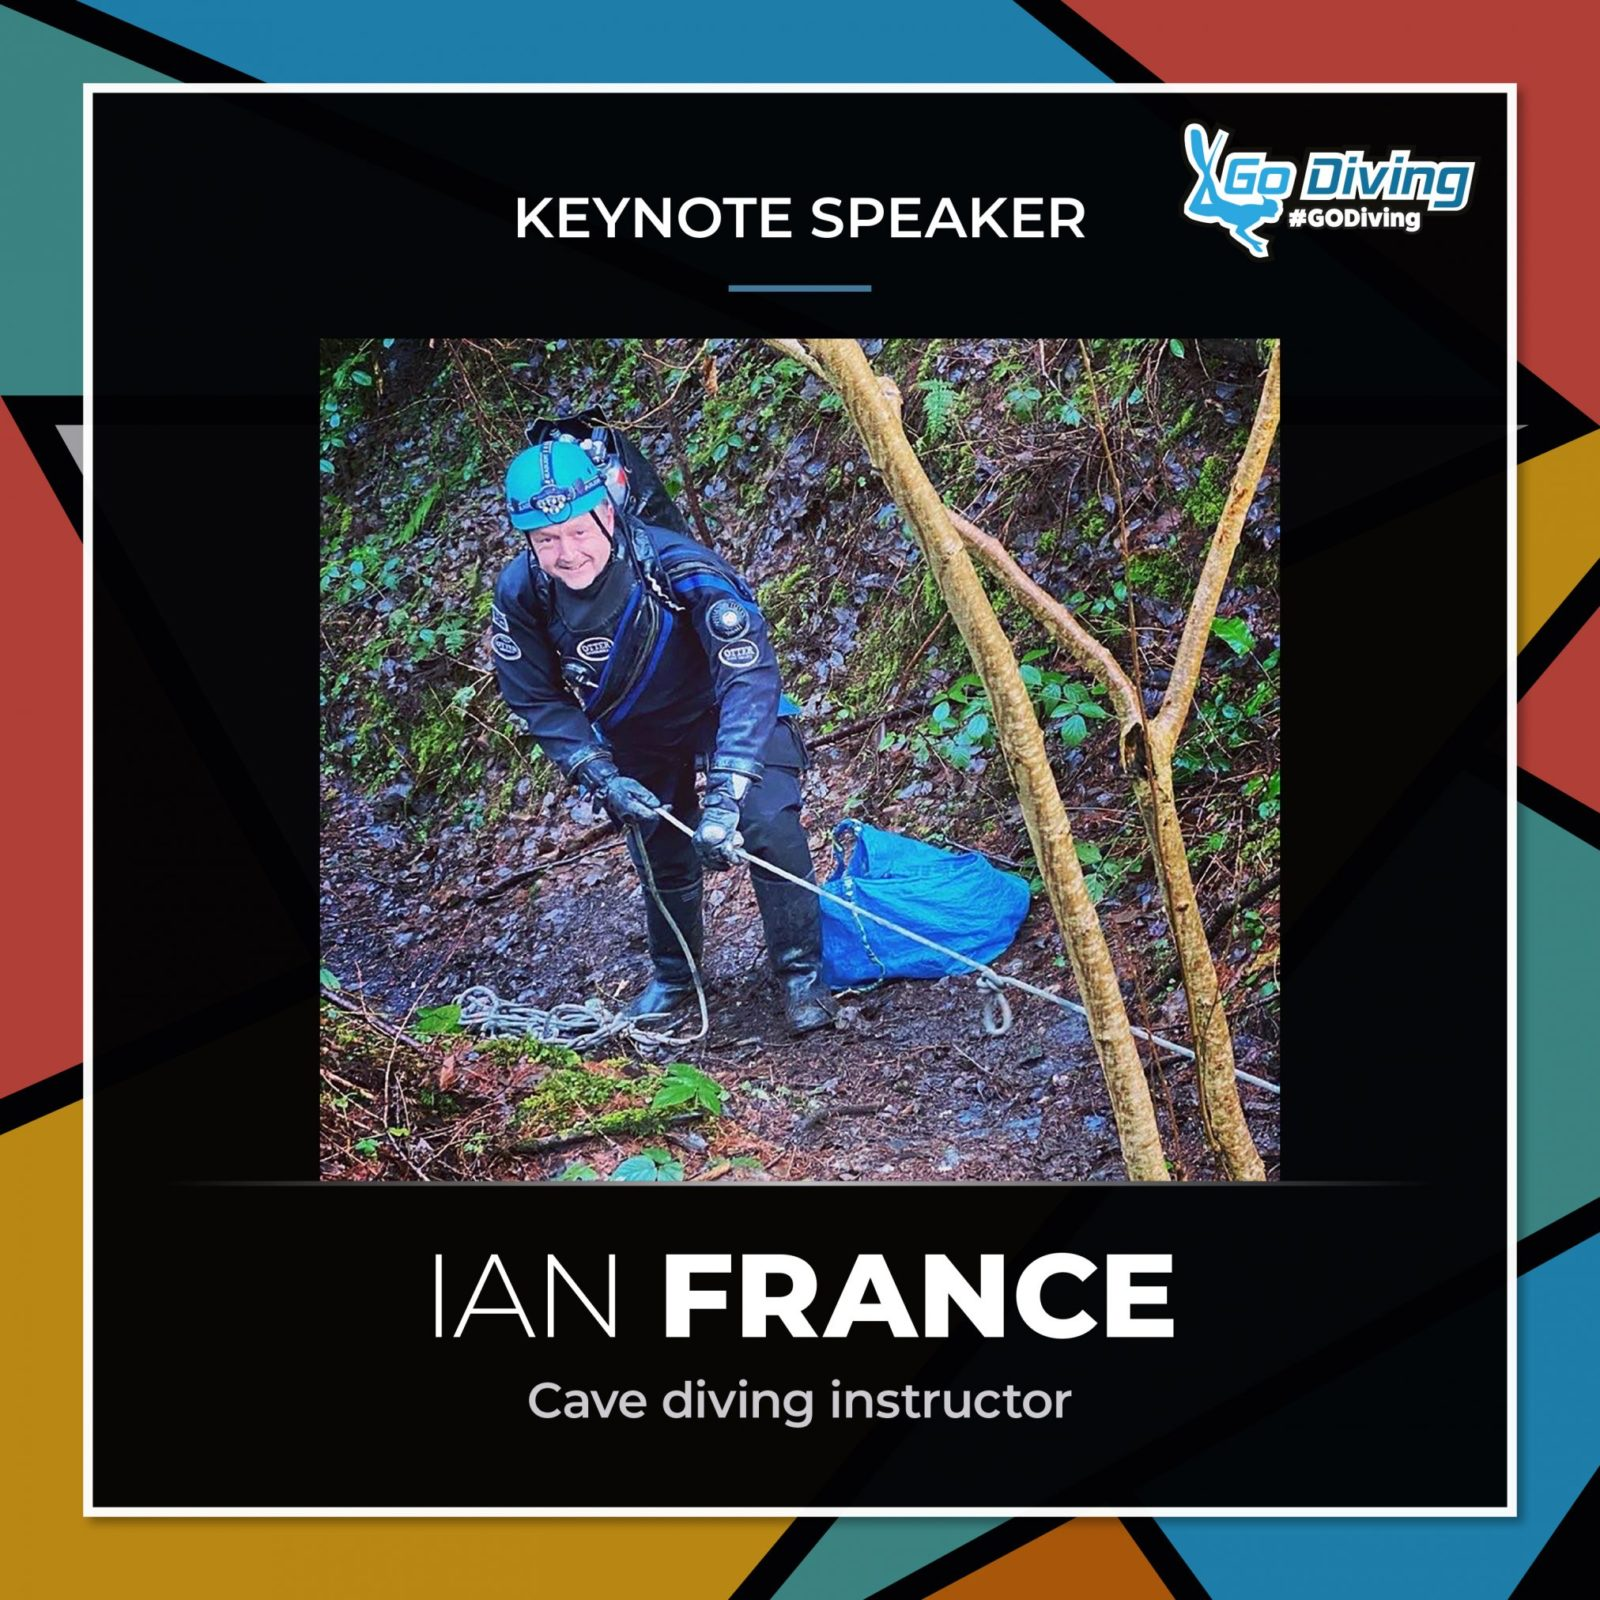 GO Diving Show Speaker Profile - Ian France 1